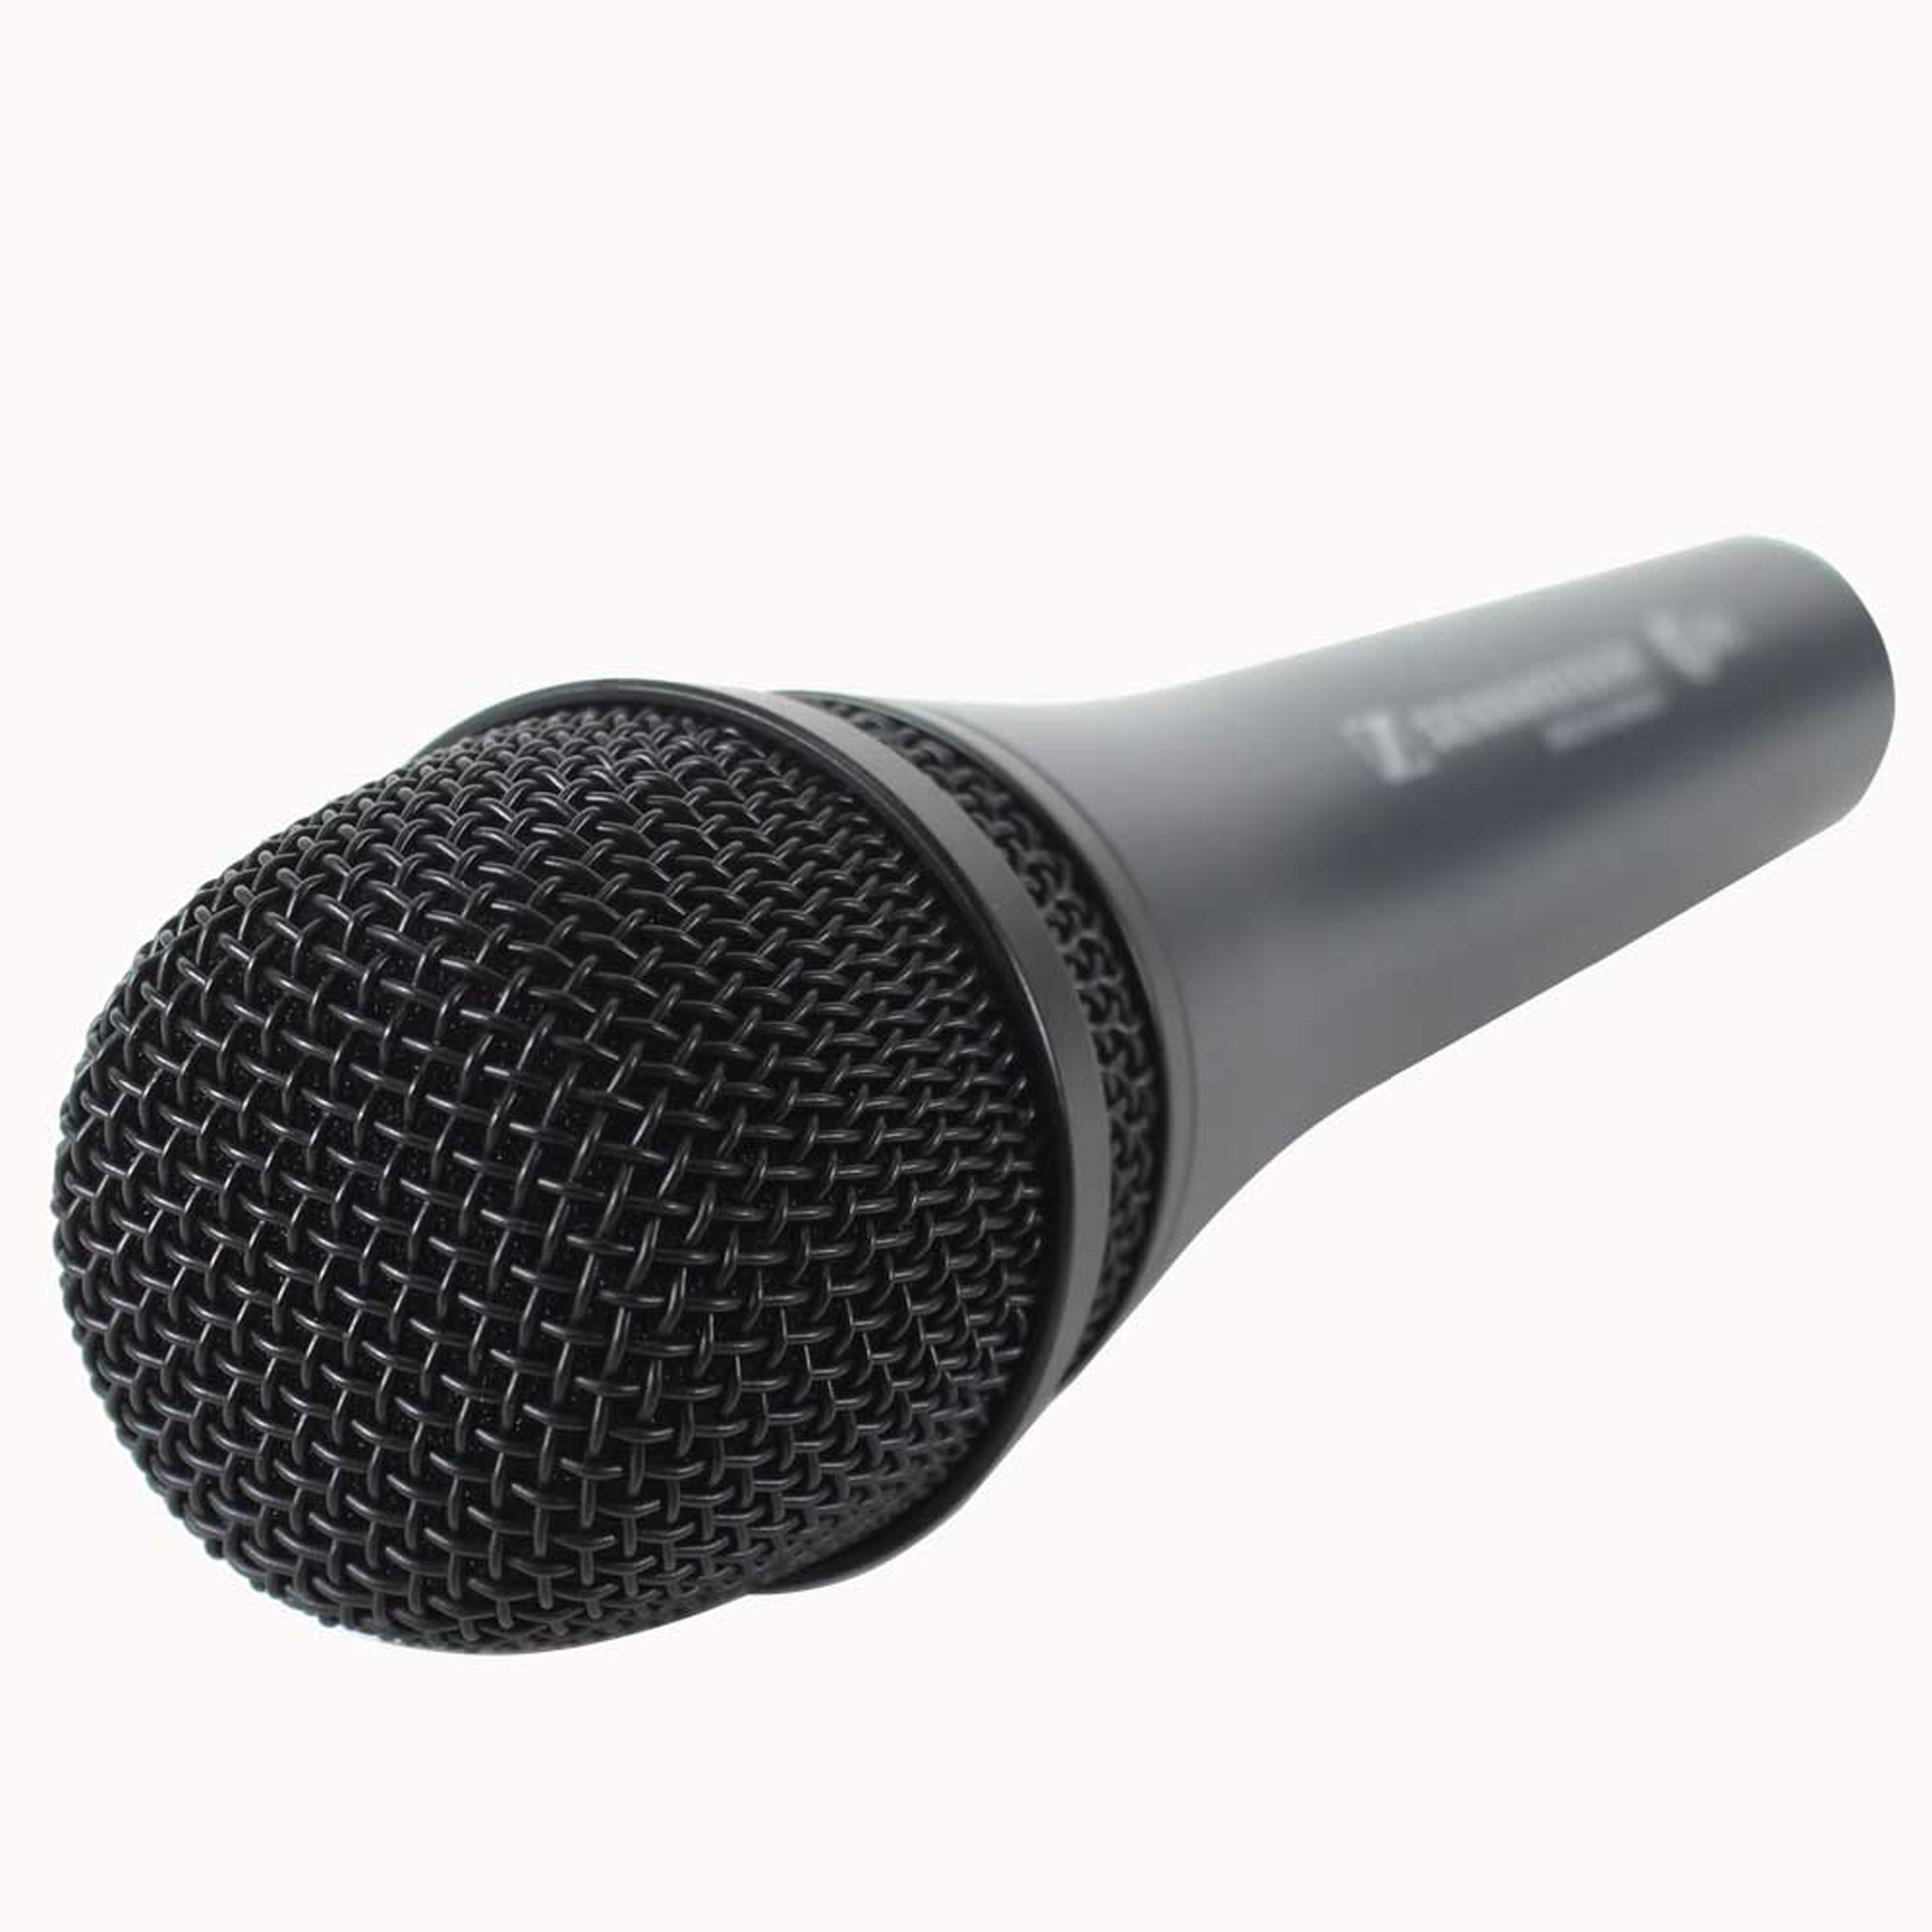 sennheiser e 845 dynamic super cardioid microphone. Black Bedroom Furniture Sets. Home Design Ideas